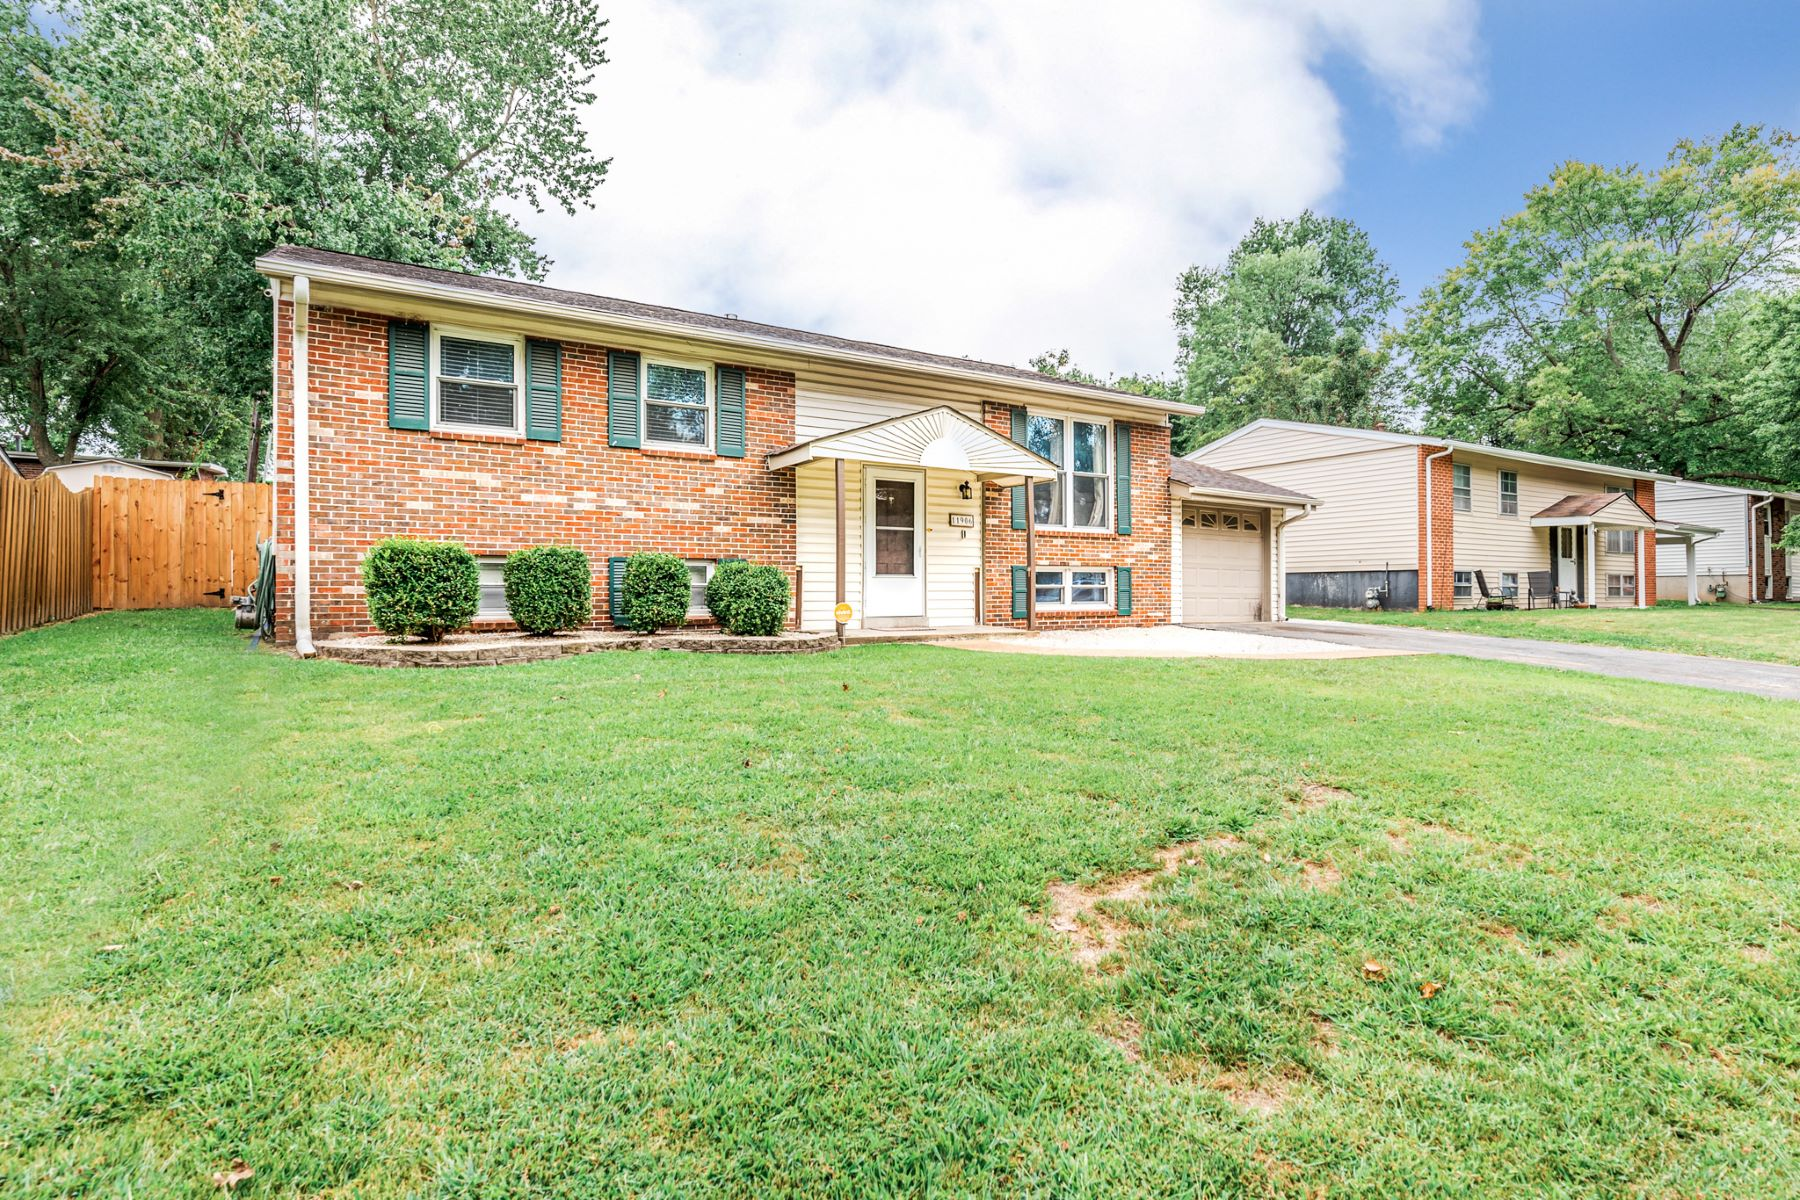 Single Family Homes for Sale at An Entertainer's Dream in Maryland Heights 11906 Longmont Drive Maryland Heights, Missouri 63043 United States